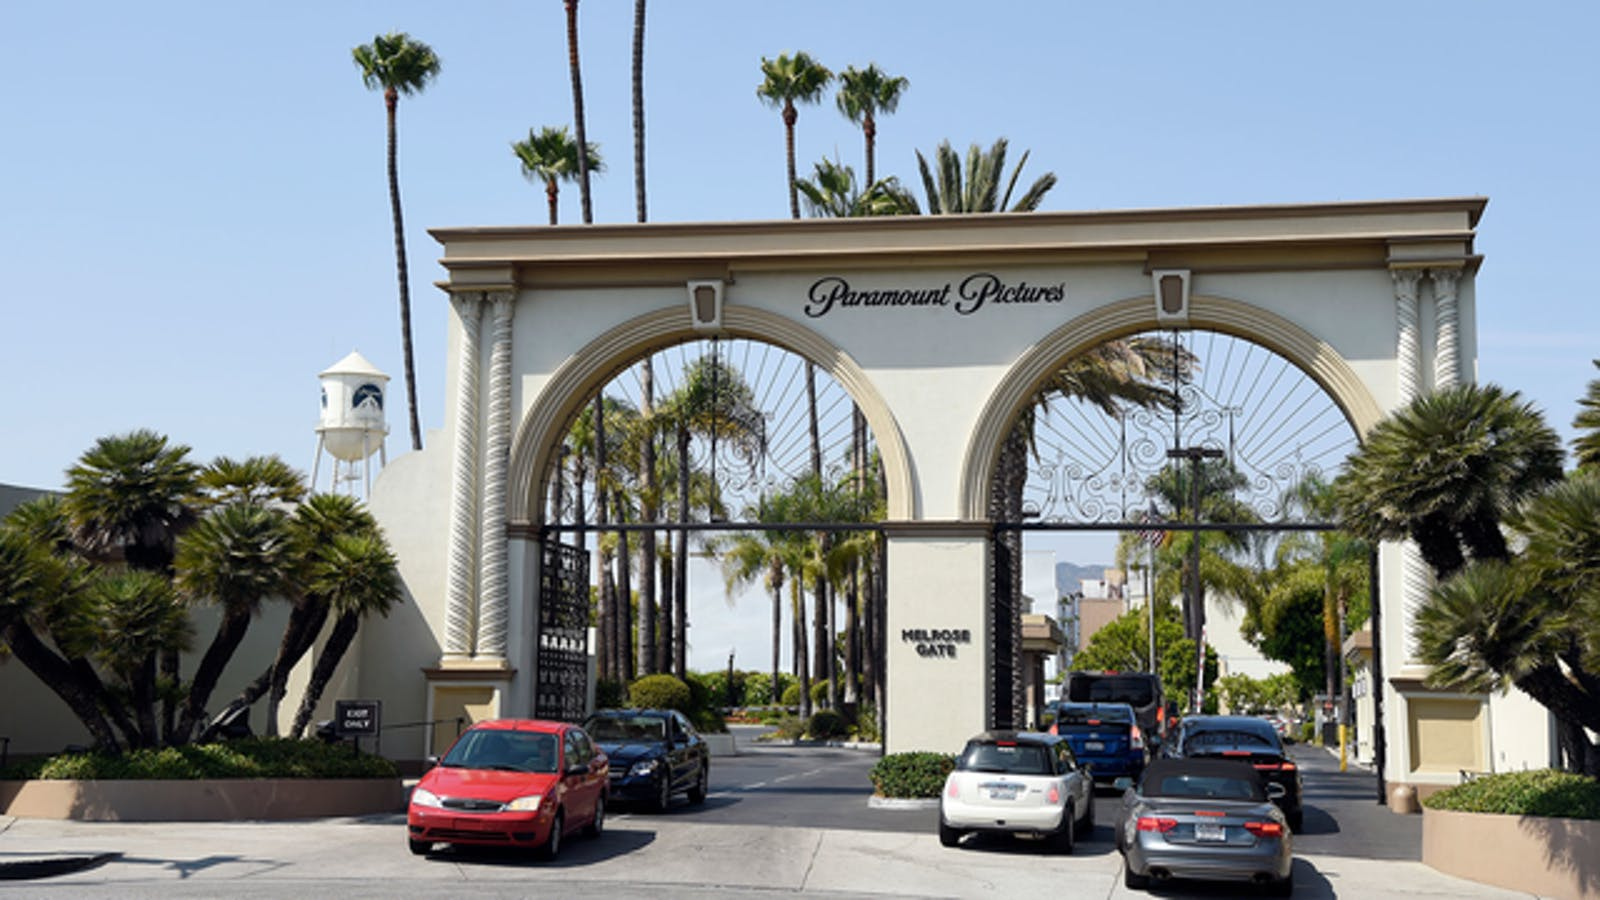 Paramount Pictures' studio lot in Hollywood. Photo by AP.